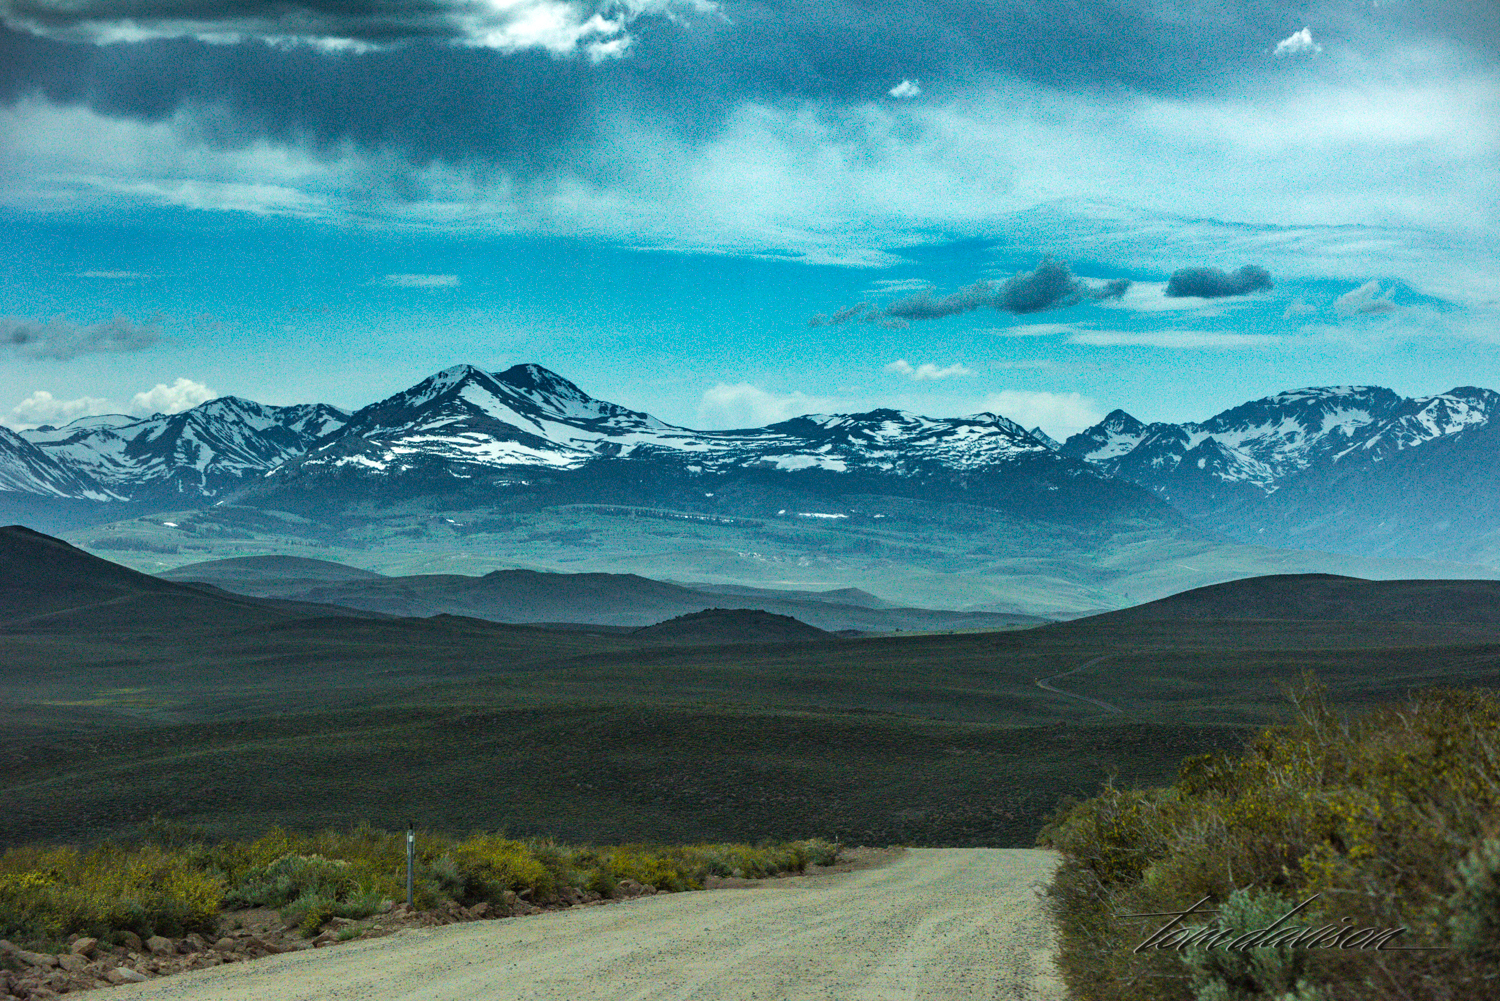 The last three miles of the road into Bodie is an oftentimes bumpy gravel road. While I focused on making sure I did not drop the car too far into a big hole, Tom focused on the mountains in front of us. He had the better job!